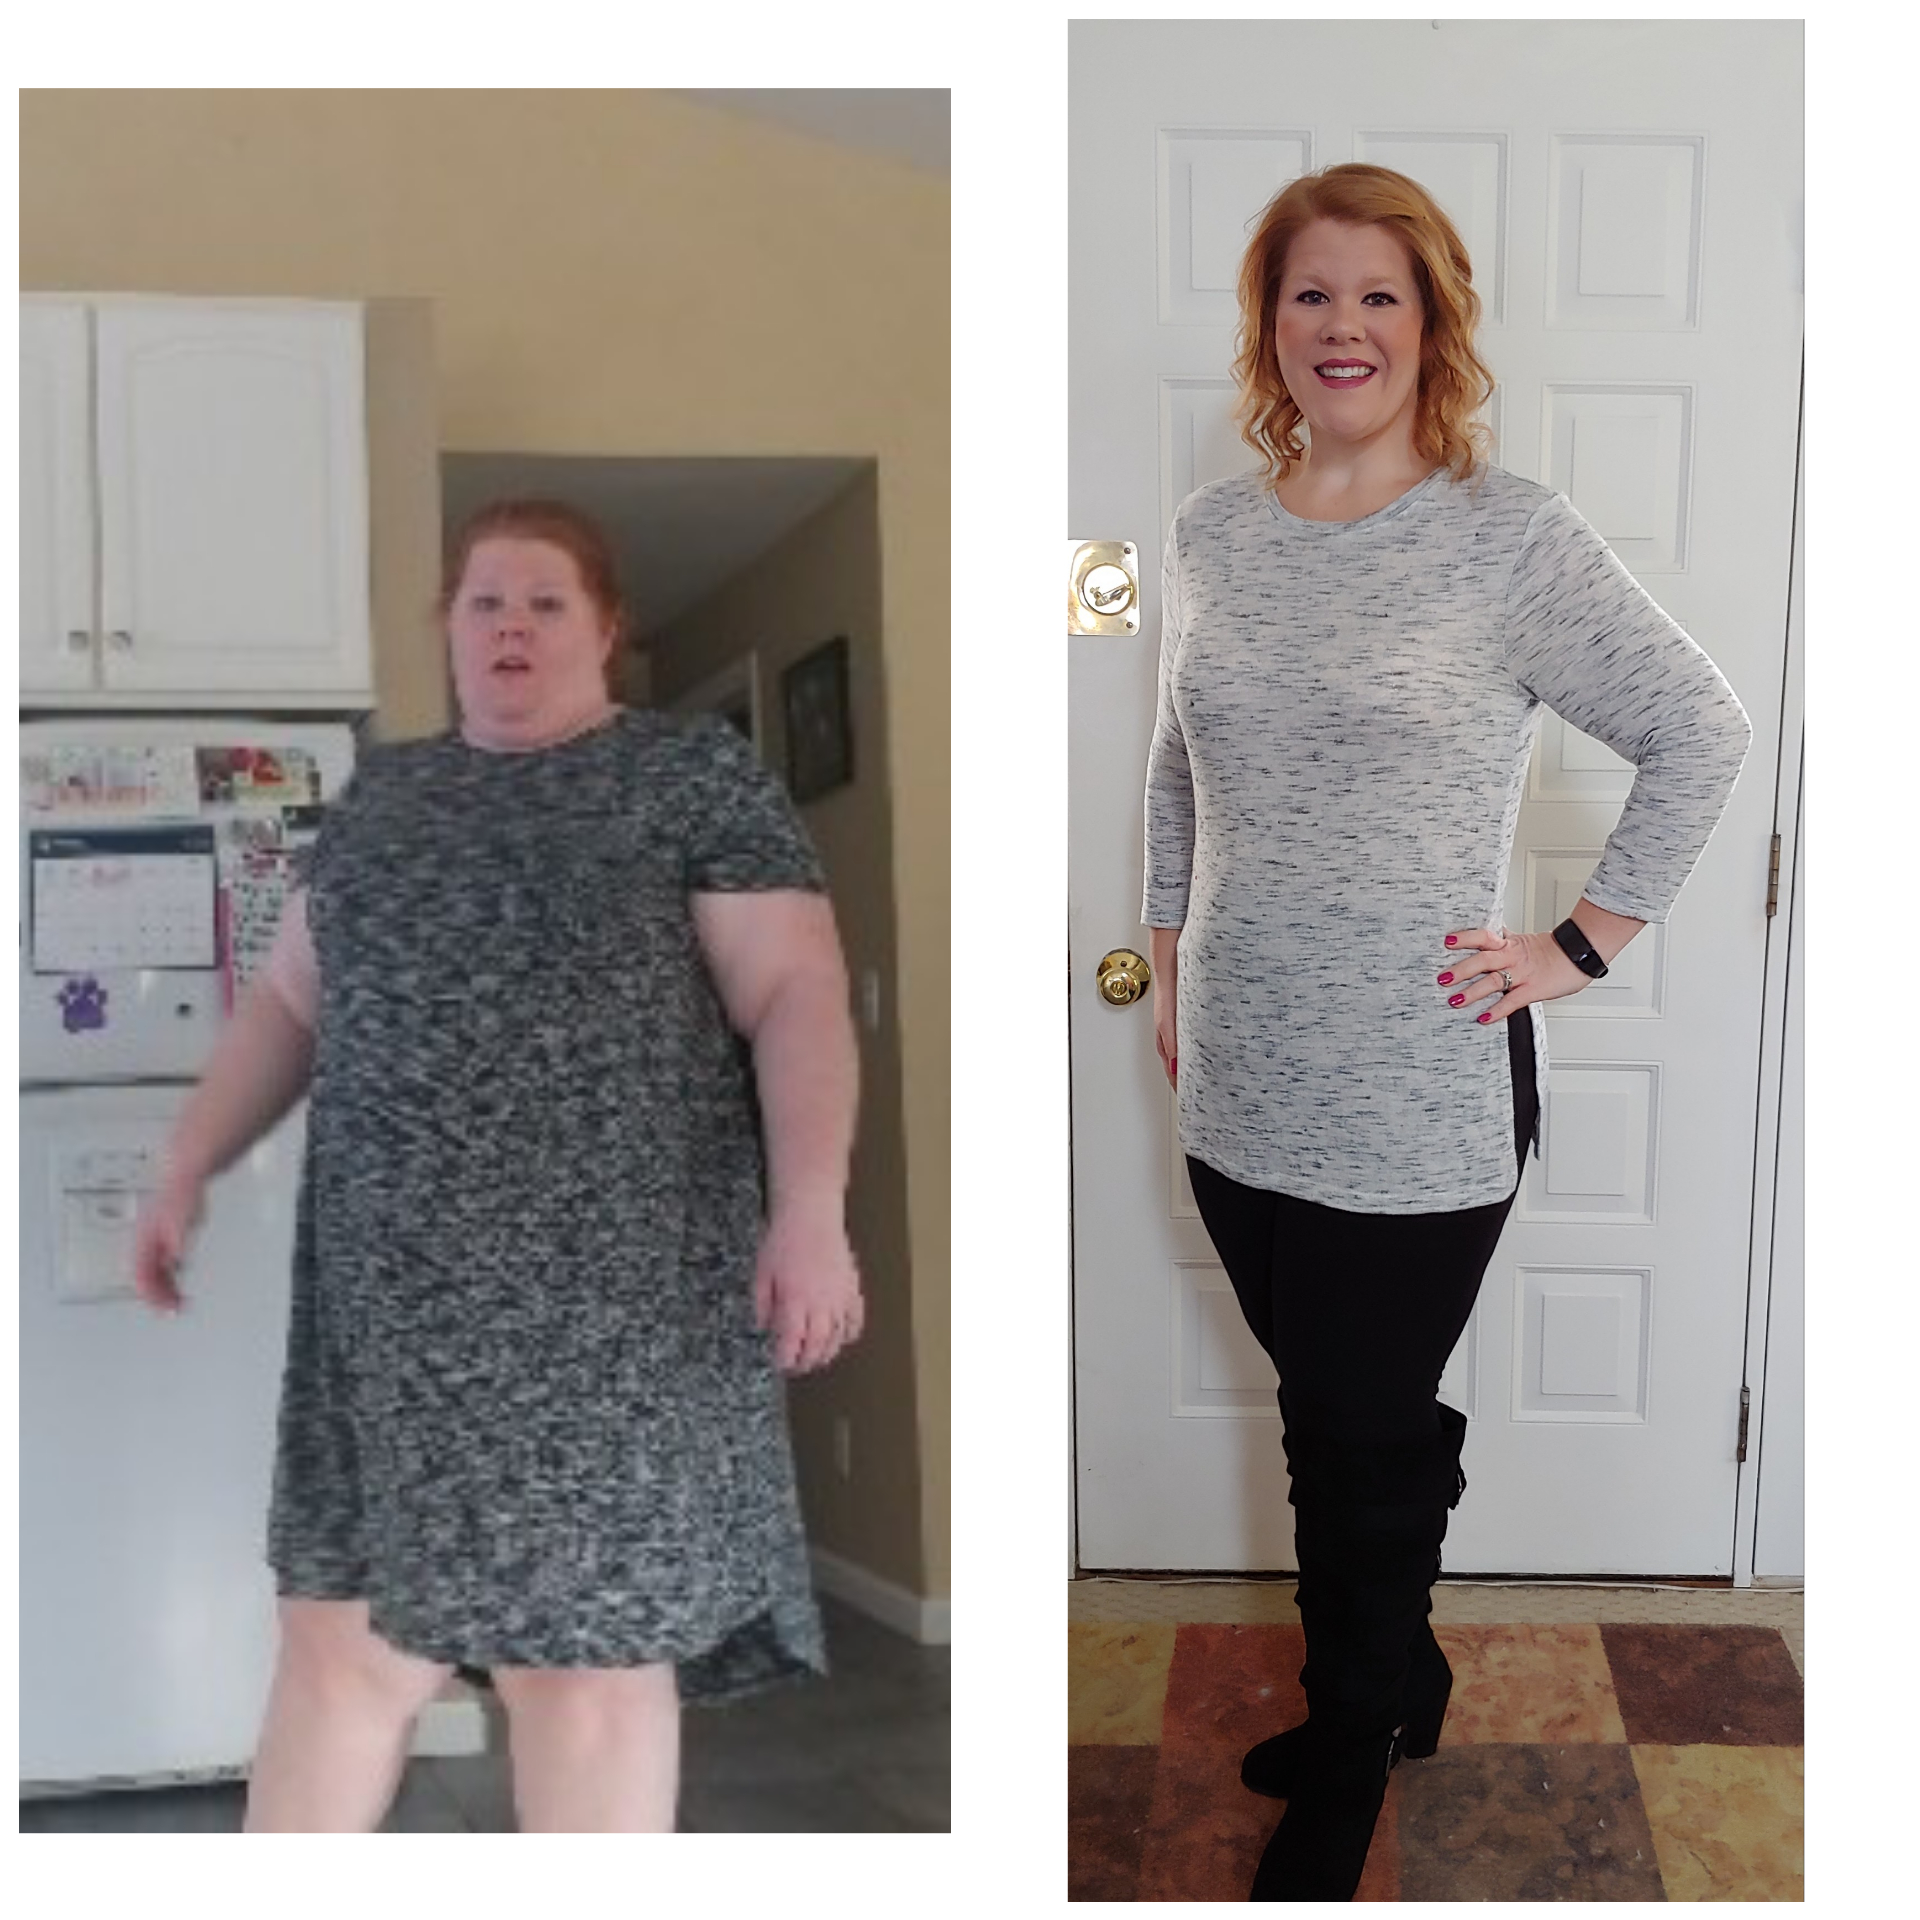 127 lbs Weight Loss Before and After 5'7 Female 338 lbs to 211 lbs